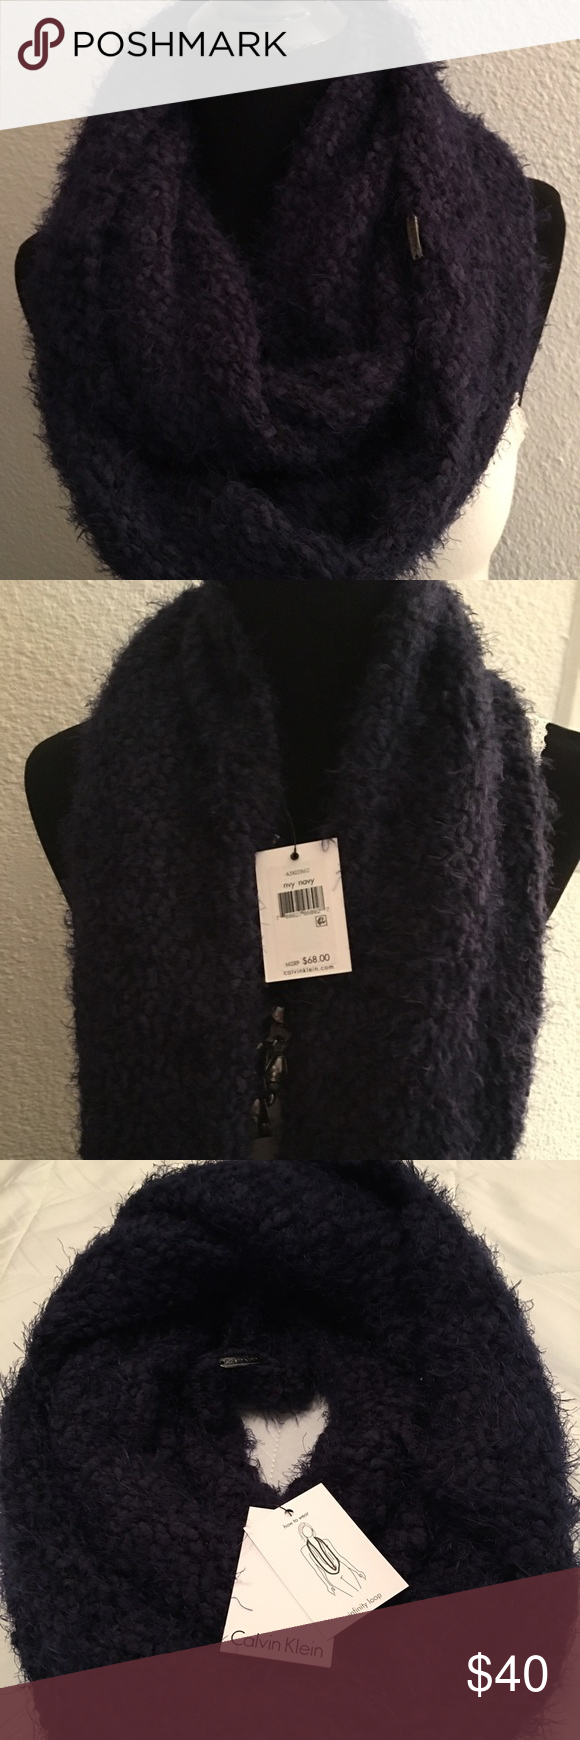 Calvin Klein Infinity Scarve Beautiful Calvin Klein Navy Blue Infinity Scarf. CAHHP3052, A5K12860 Nvy.  MSRP $68 Calvin Klein Accessories Scarves & Wraps